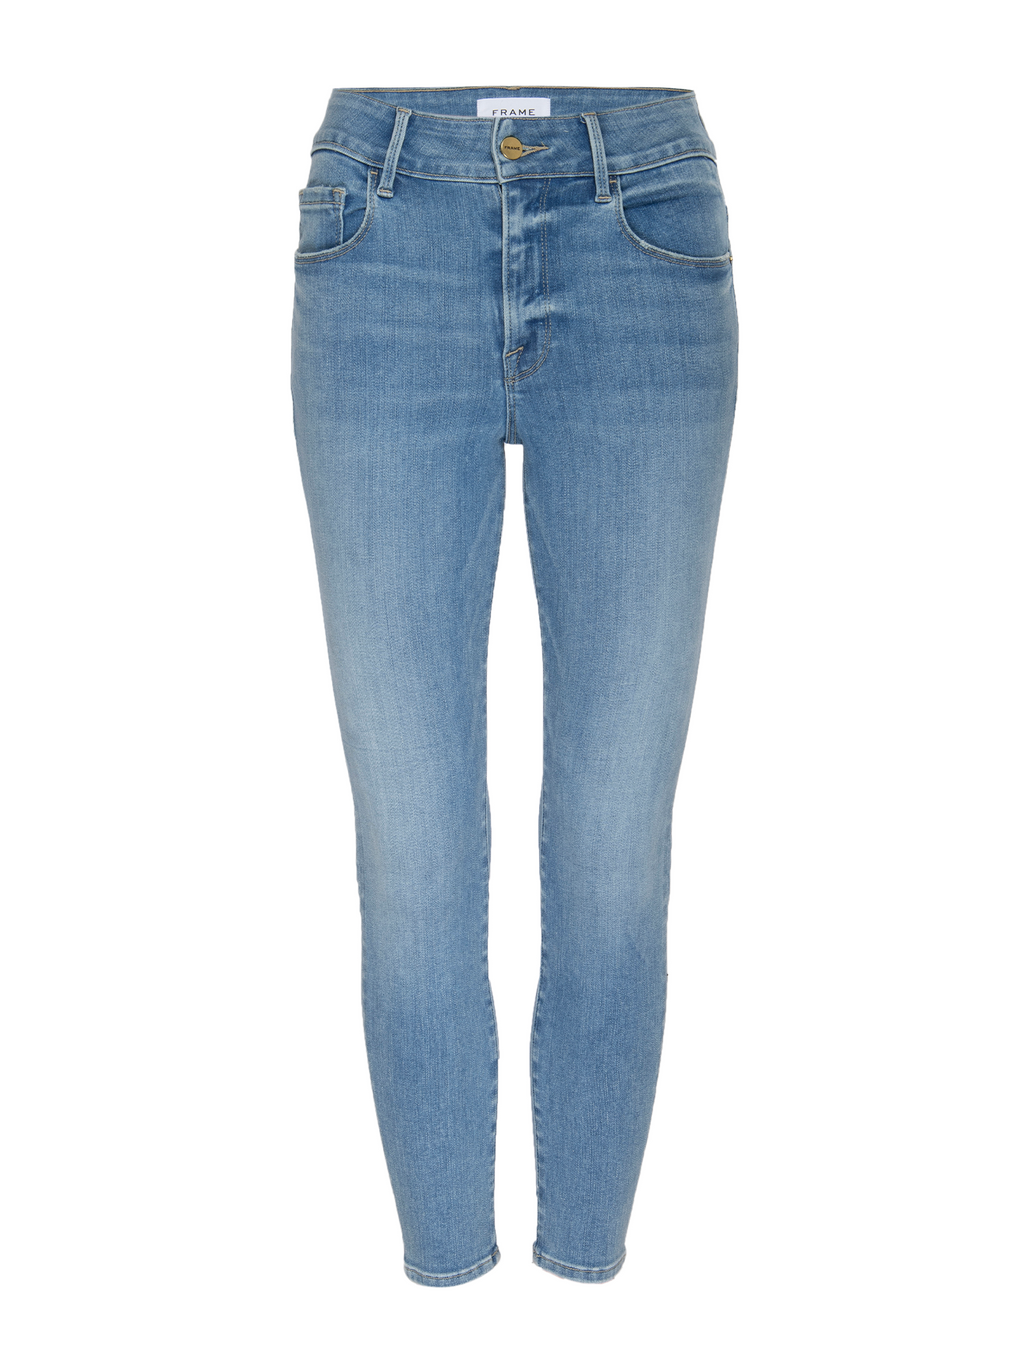 Frame Le One Skinny Jean - Super Stretch Sustainable Denim